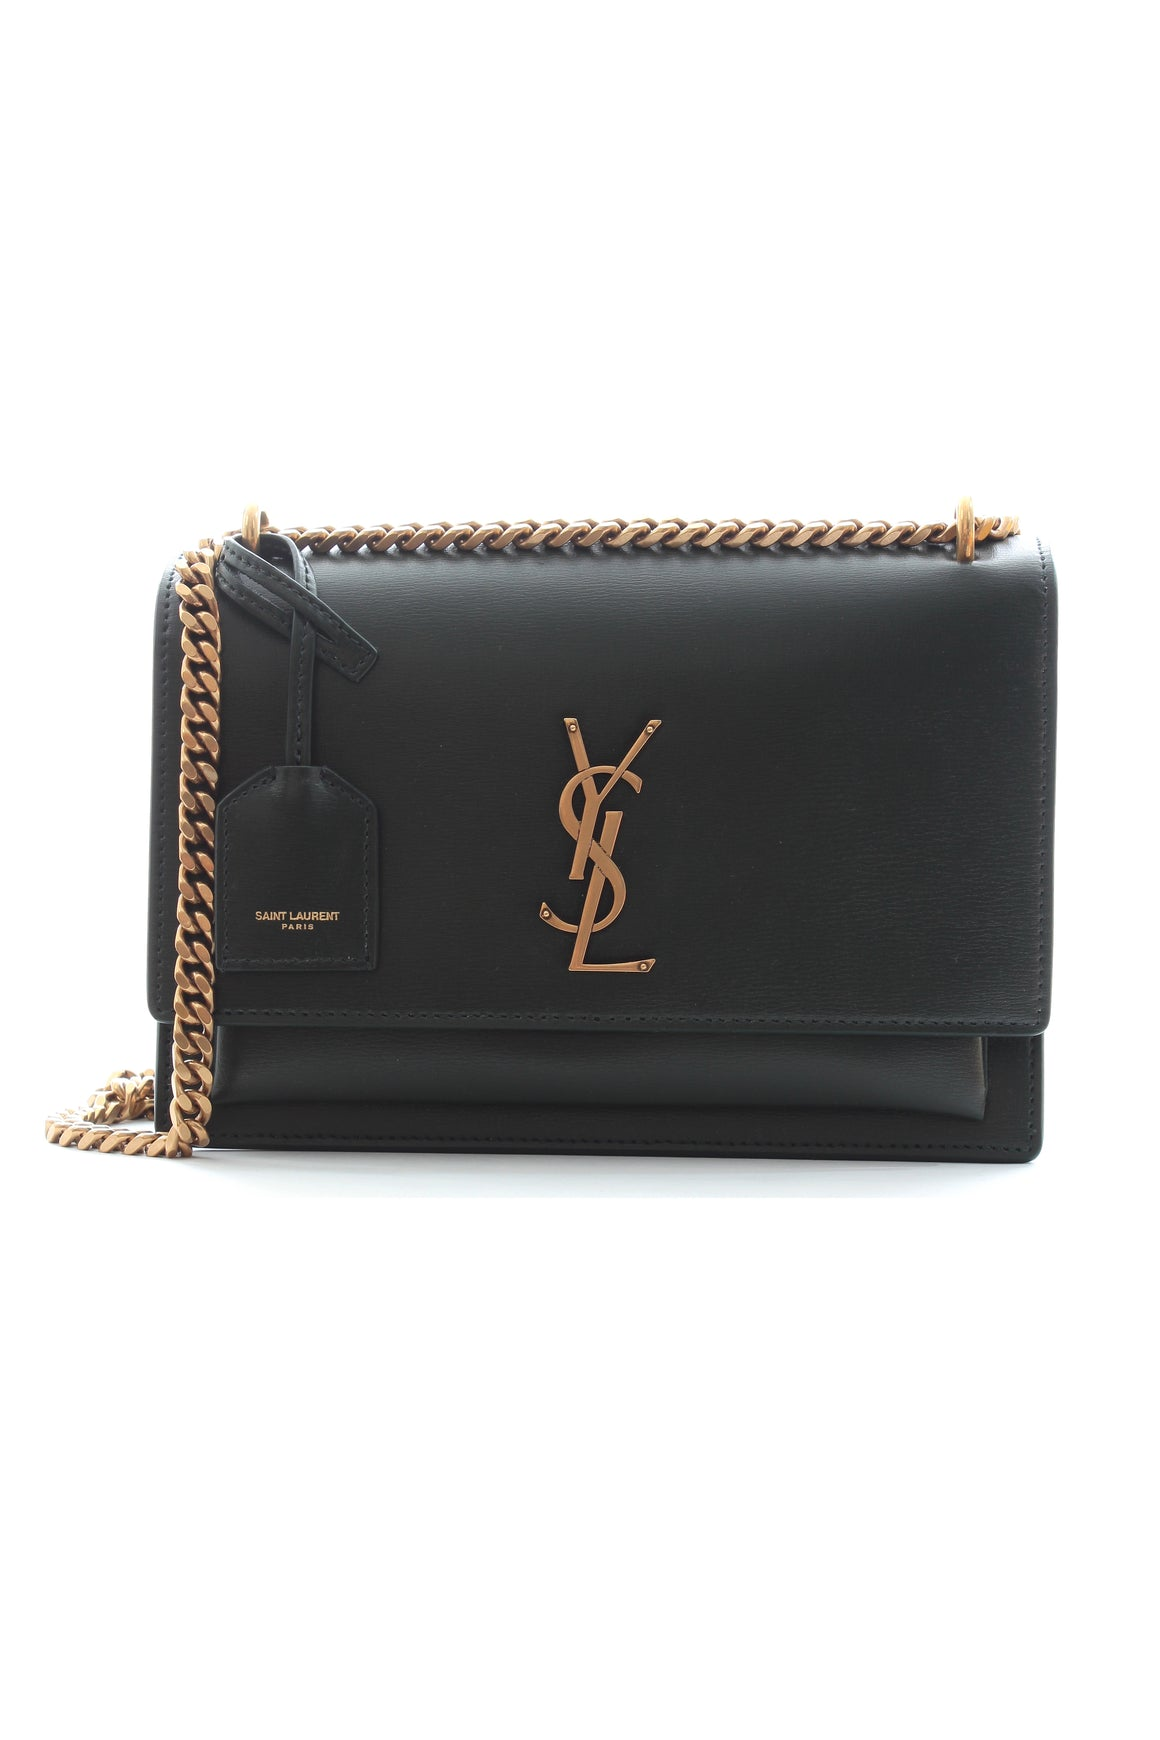 Saint Laurent Sunset Medium Shoulder Bag